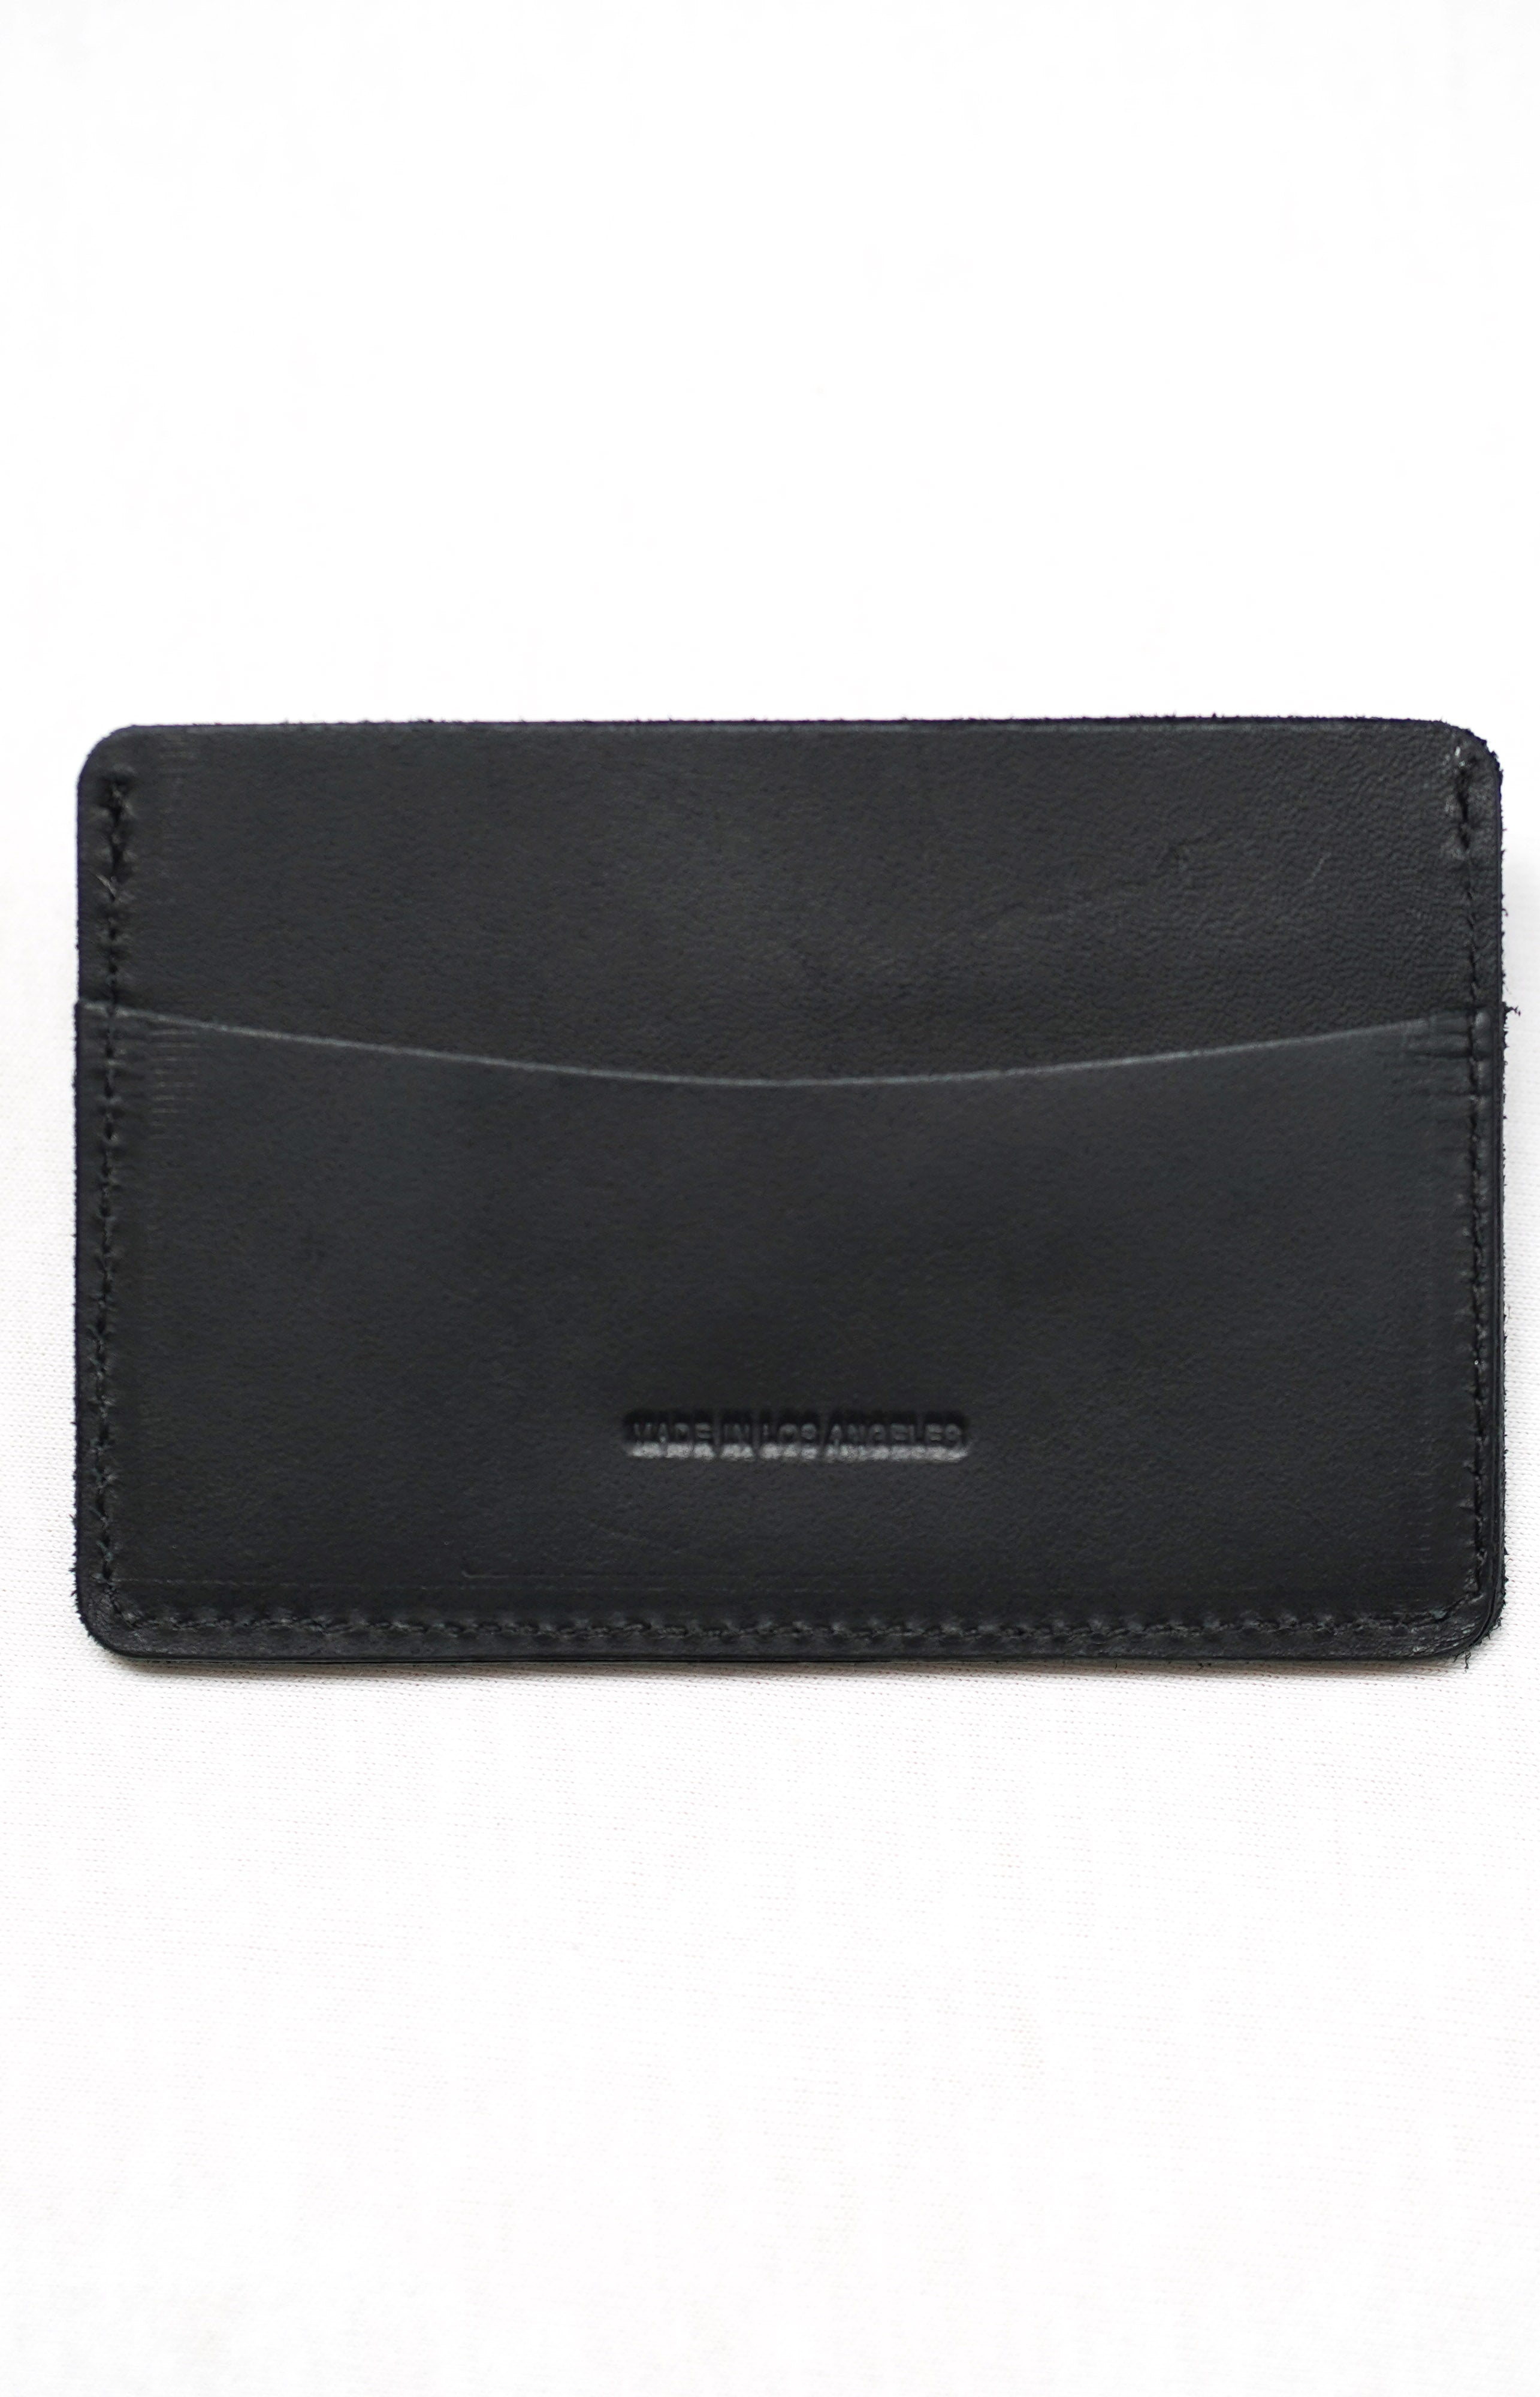 Classic Black Card Holder Wallet